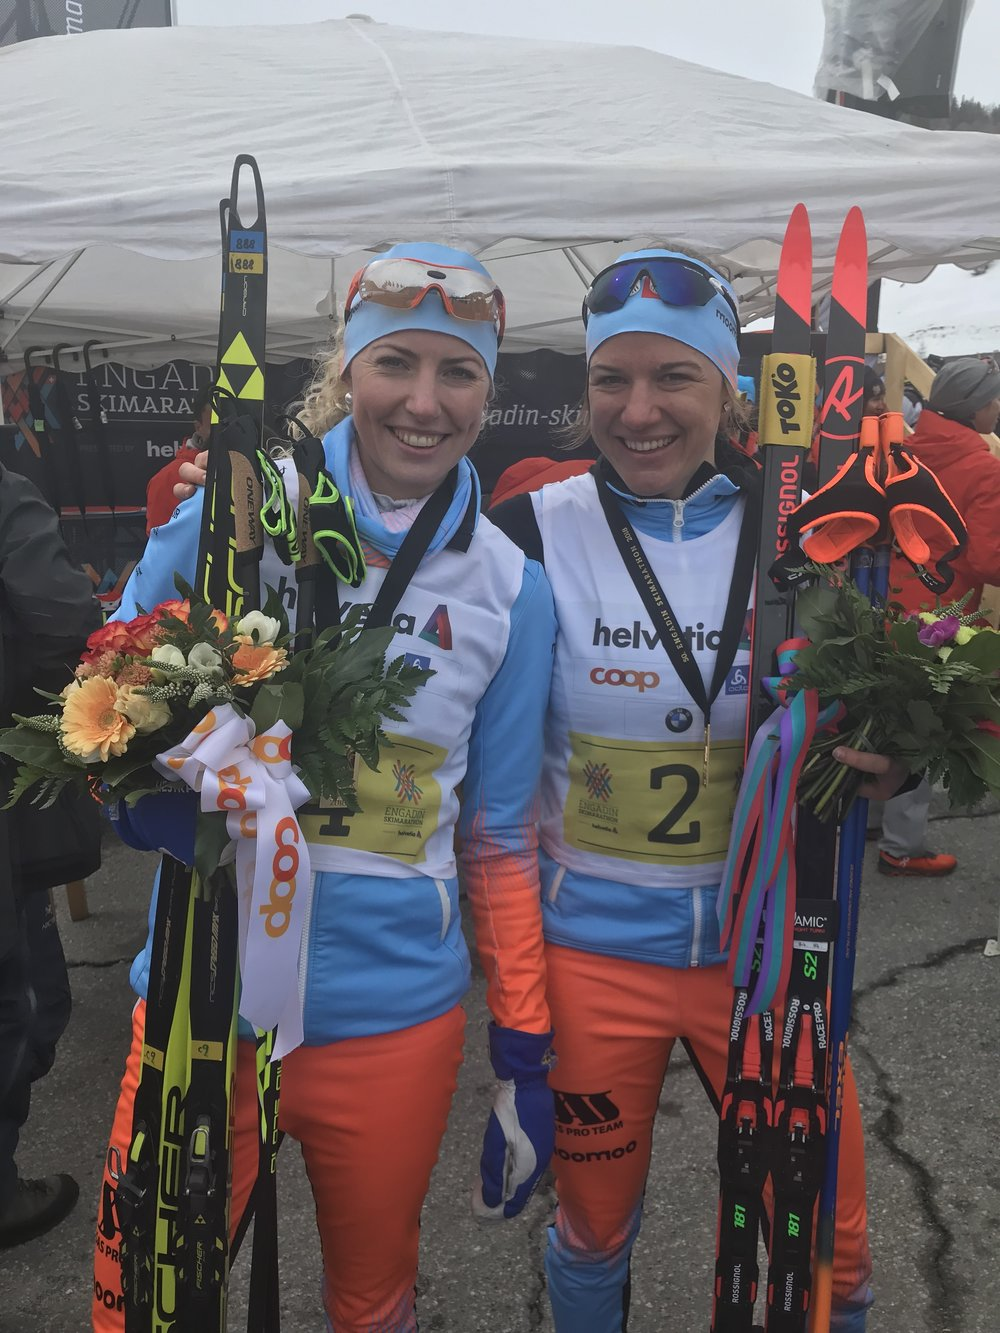 Maria Gräfnings and Rahel Imoberdorf. My two training partners and good friends after placing 2nd and 4th in the Engadiner. Without these two ladies, I wouldn't have enjoyed this year and season with the SAS ProTeam as much as I did!